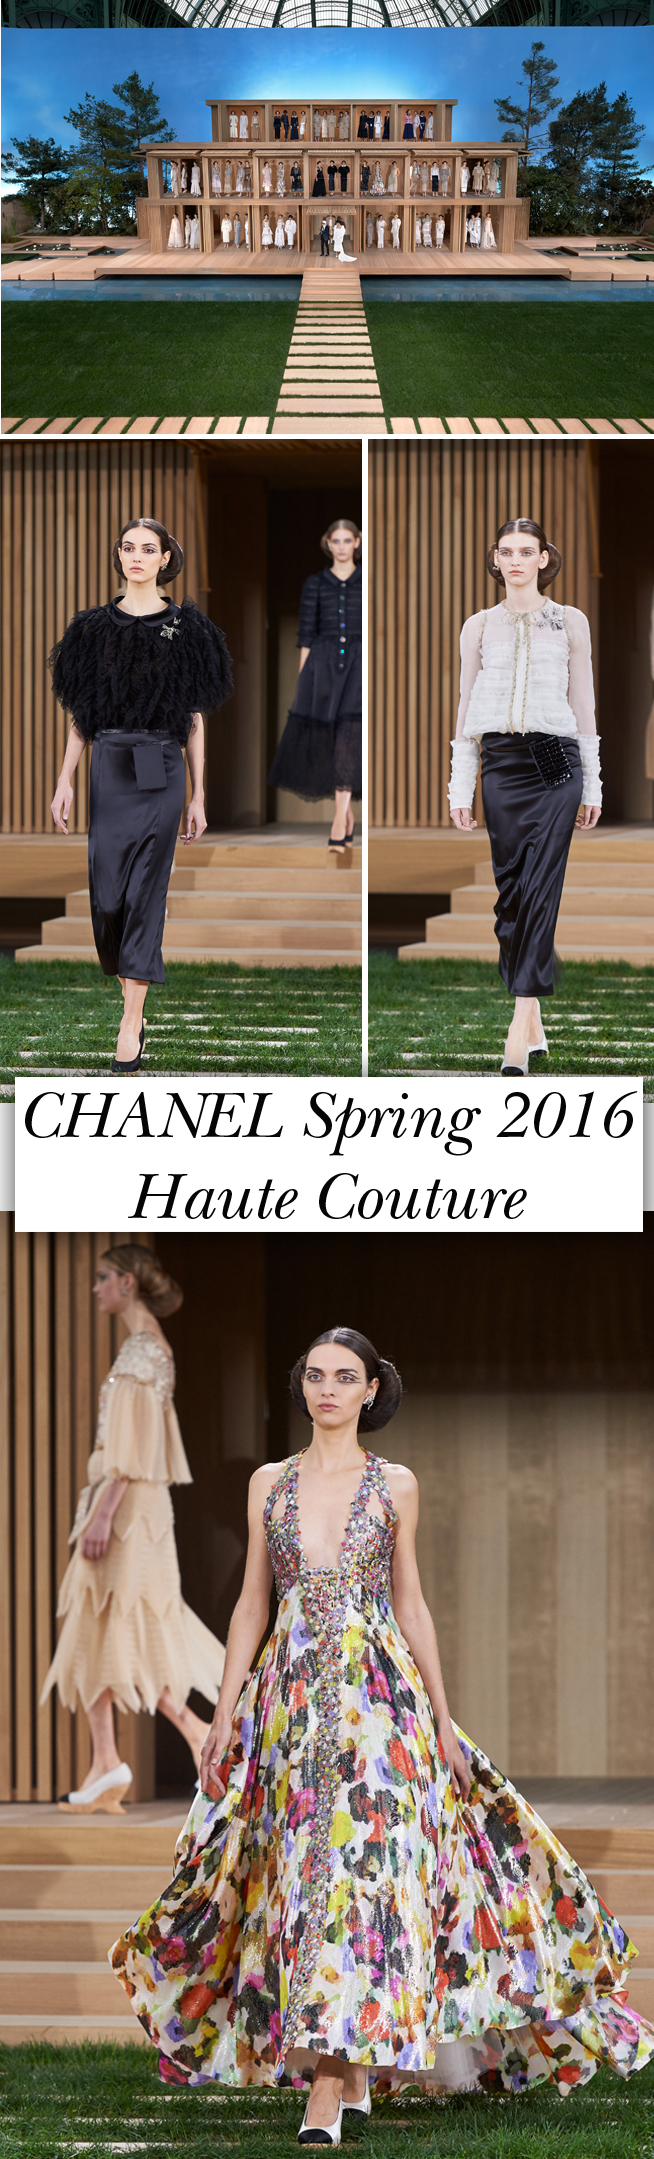 Chanel, Chanel Spring Summer 2016, Haute Couture, Chanel Haute Couture, Perfect Wedding Magazine, Perfect Wedding Blog, Couture Bride